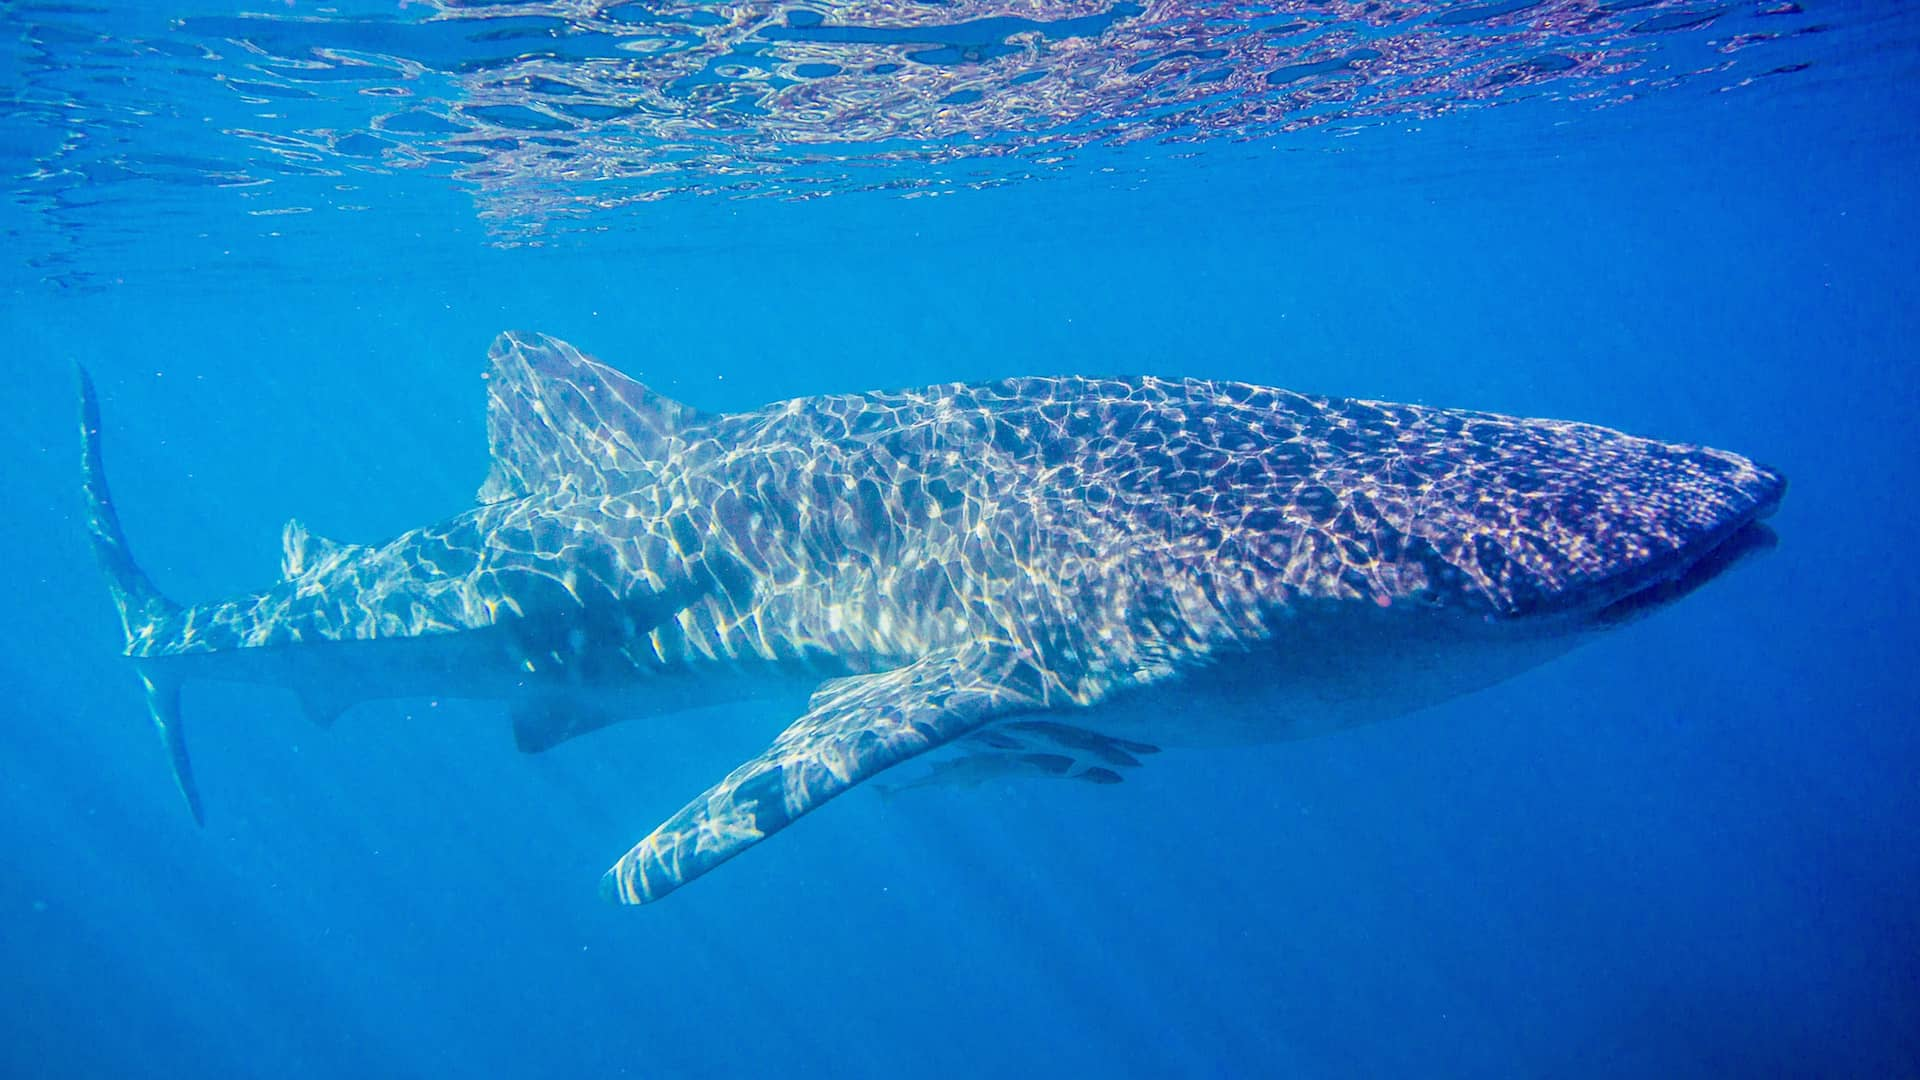 SWIMMING IN A WHALE SHARK WONDERLAND